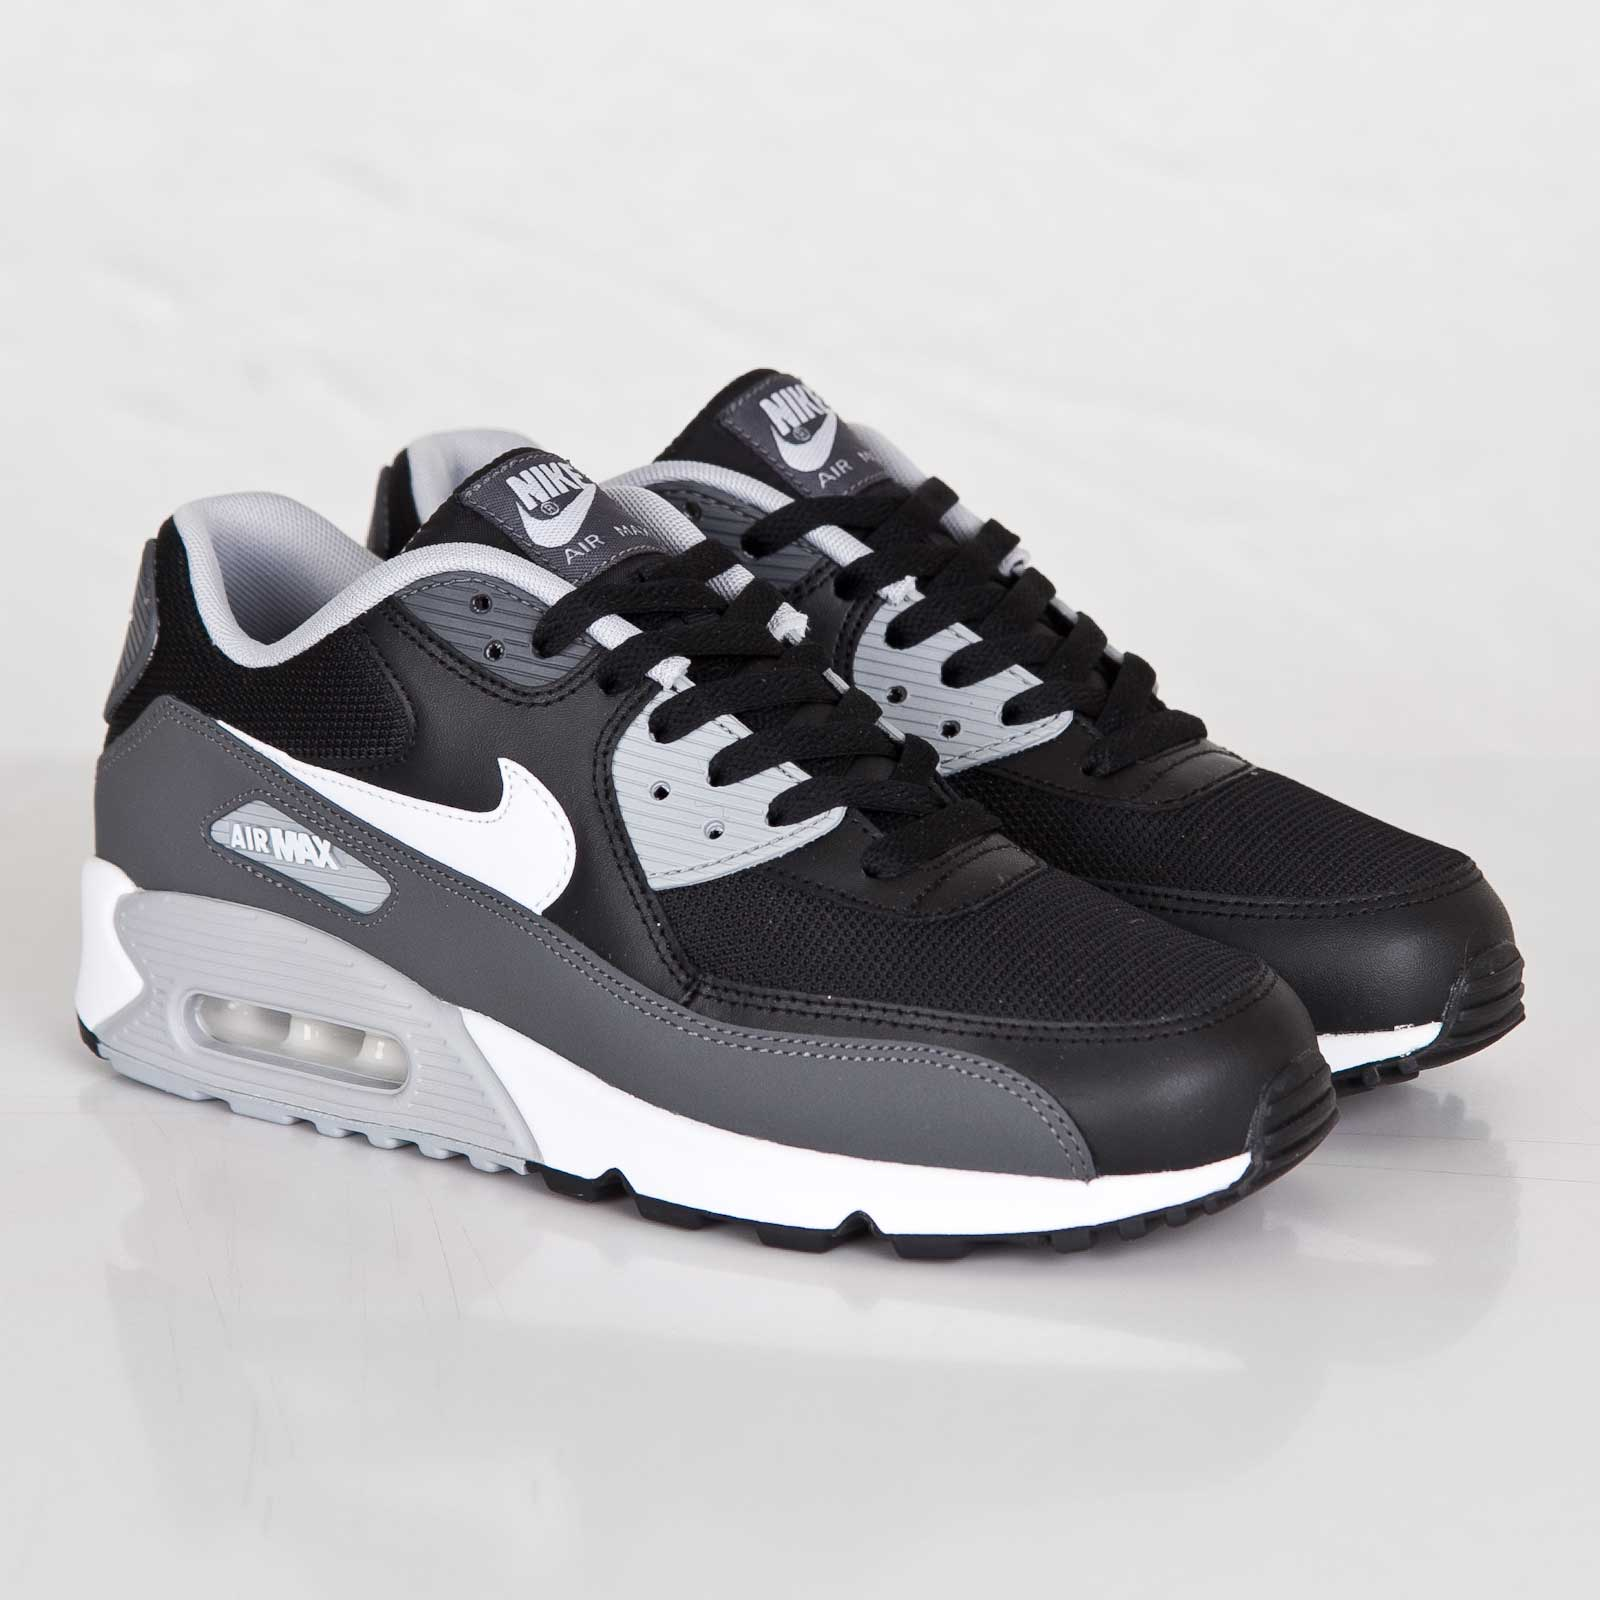 Nike Air Max 90 Essential 537384 032 Sneakersnstuff